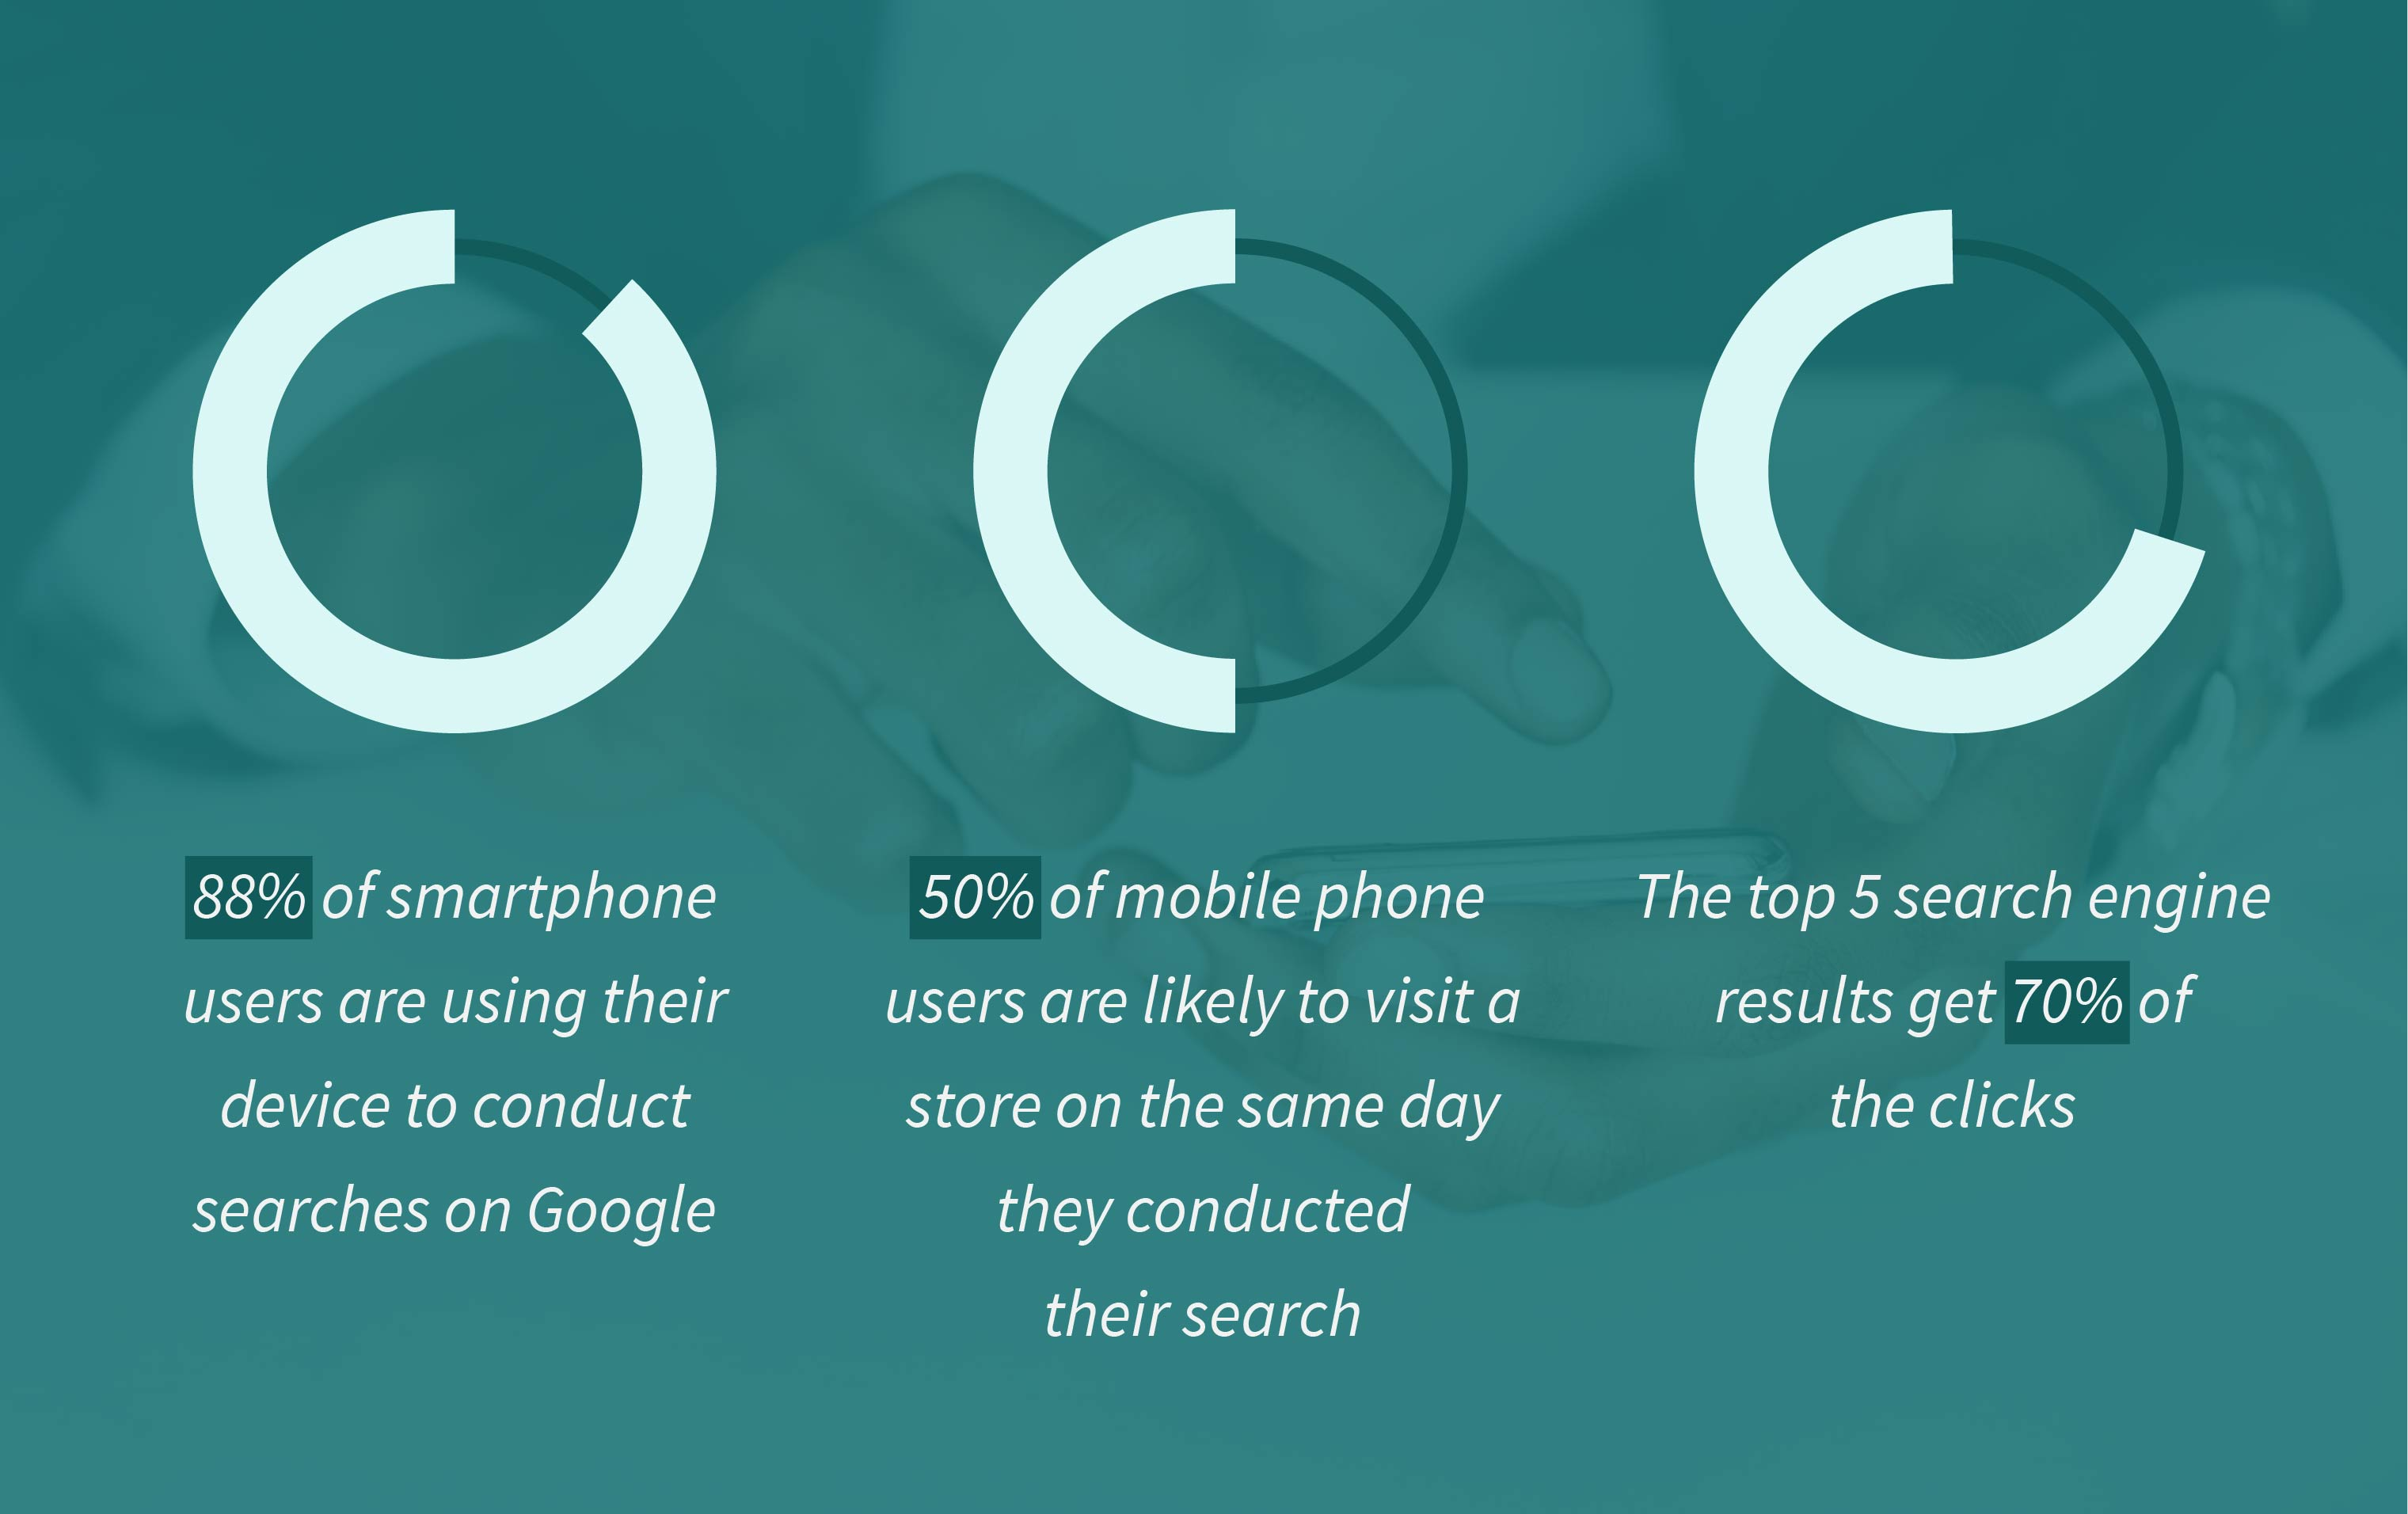 keyword-stats-mobile-search-engines